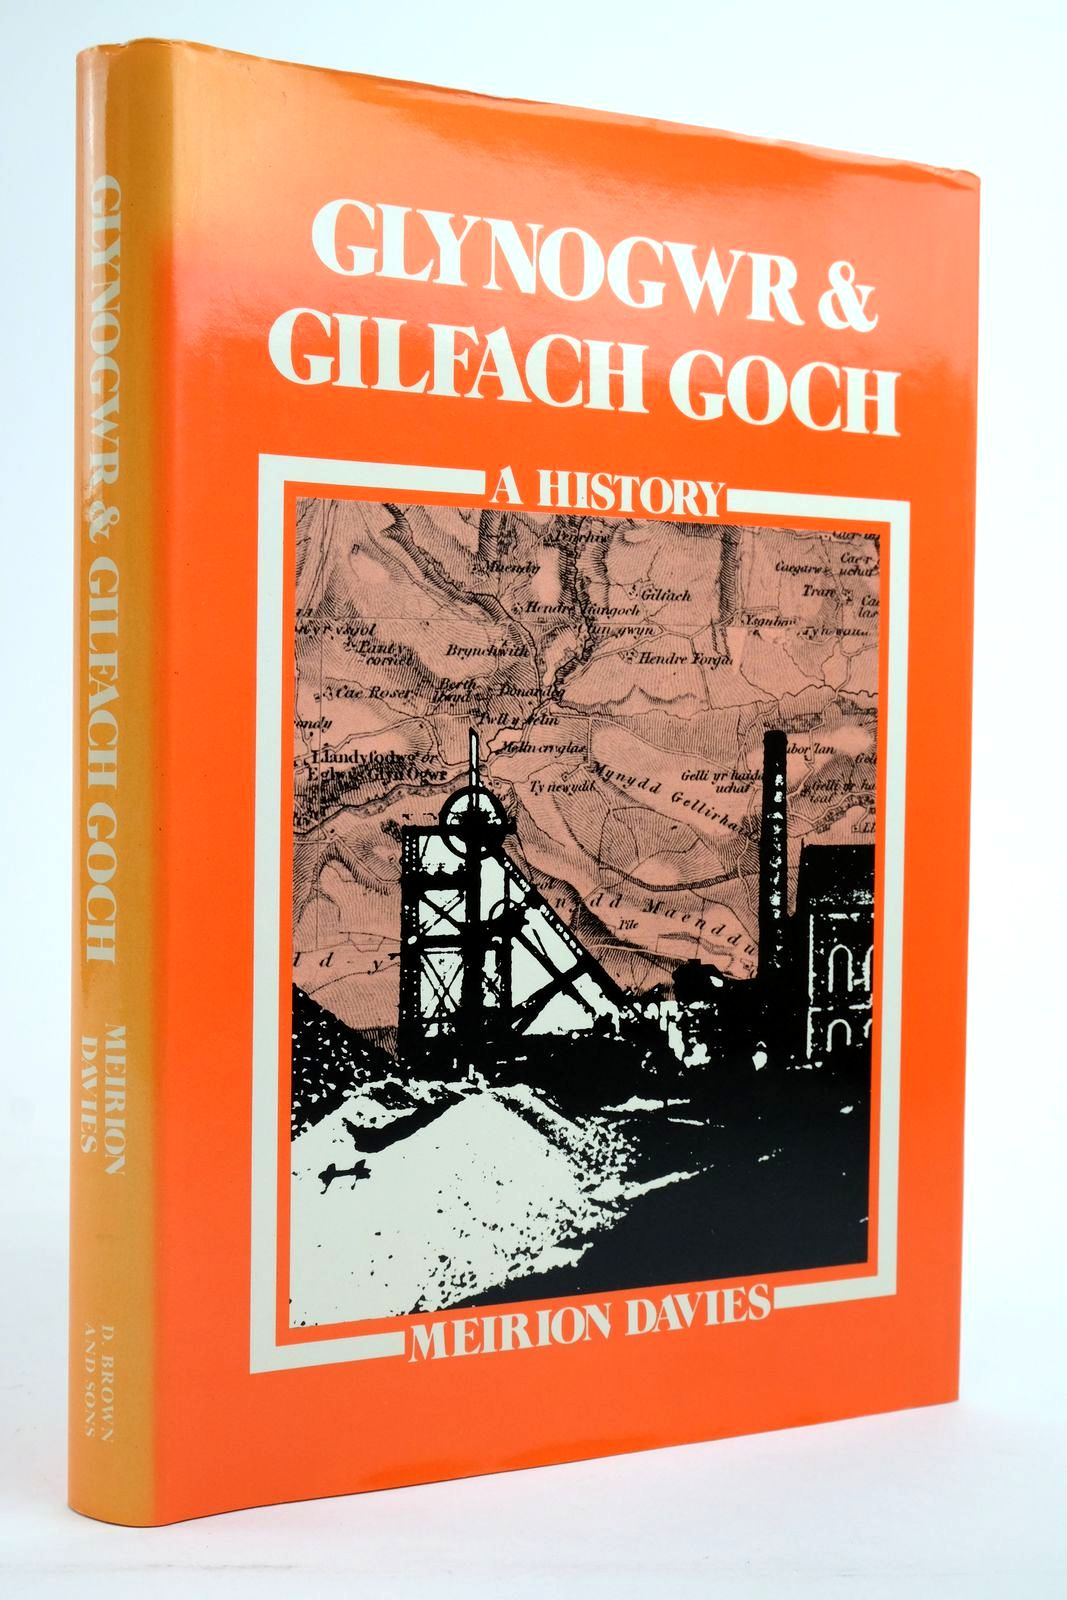 Photo of GLYNOGWR AND GILFACH GOCH- Stock Number: 2135433